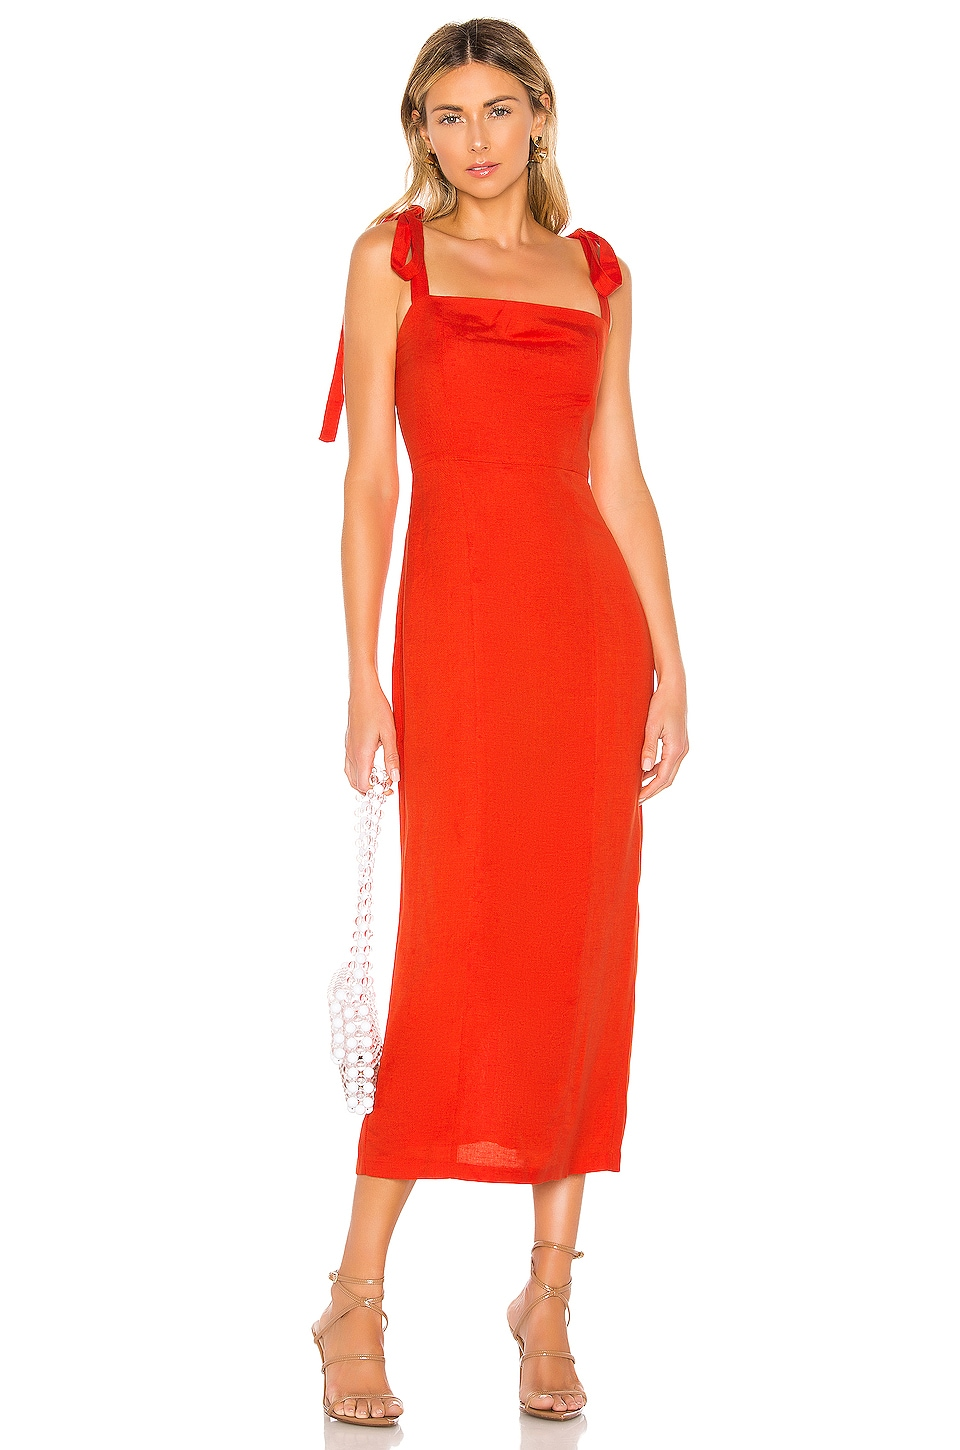 Capulet Camille Midi Dress in Tangerine